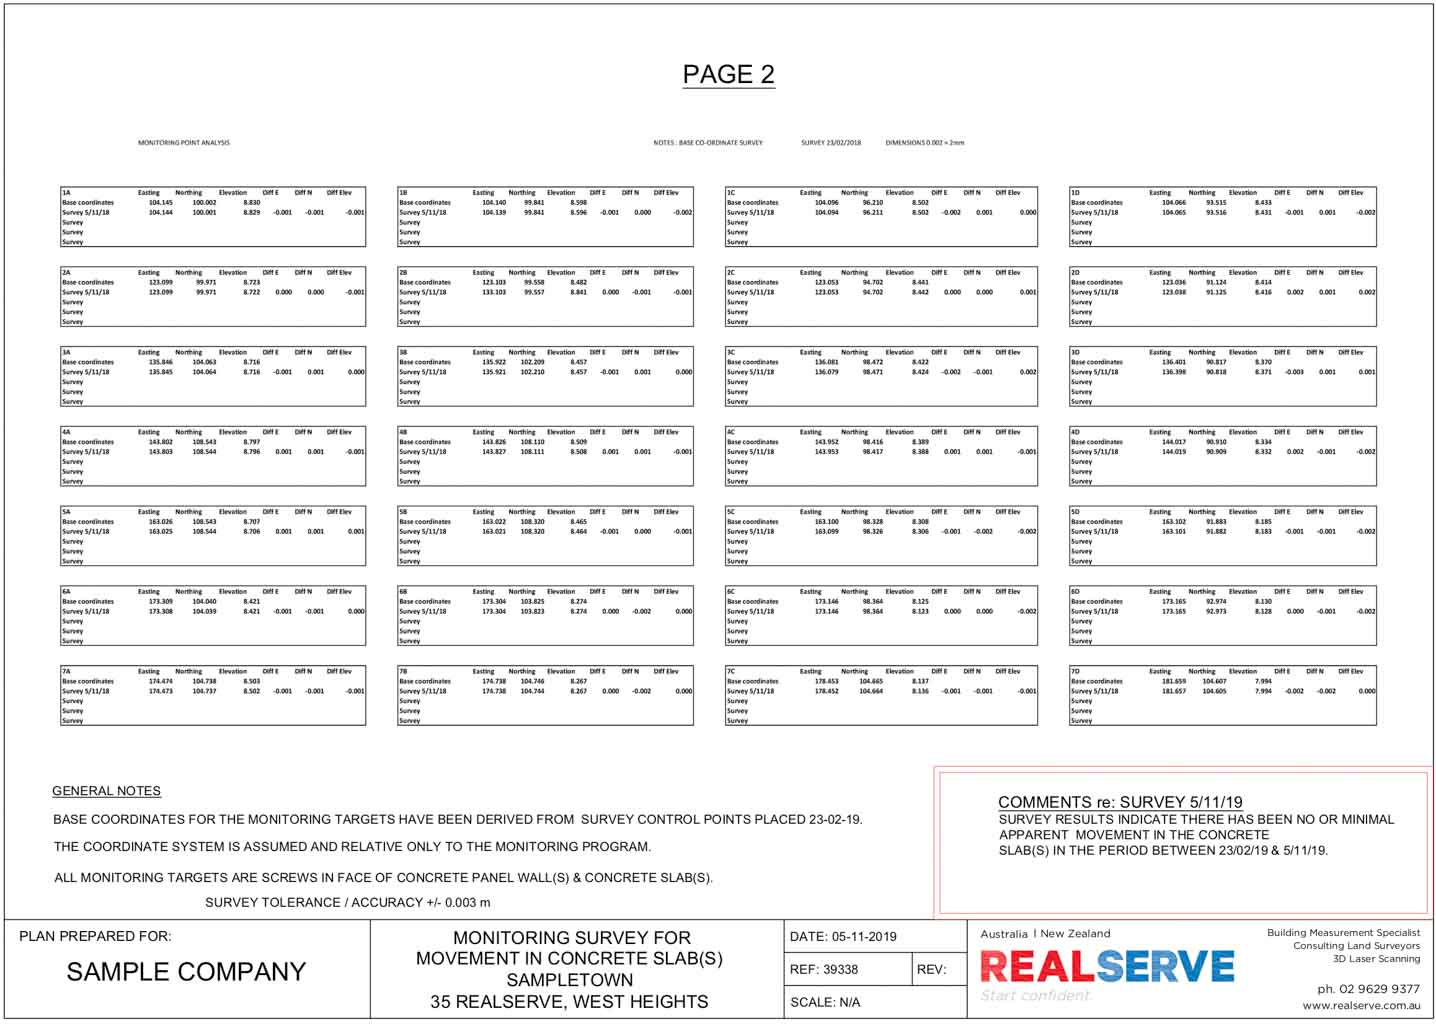 A SAMPLE OF A SURVEYFOR A COMMERCIAL PROPERTY SITE BY REALSERVE